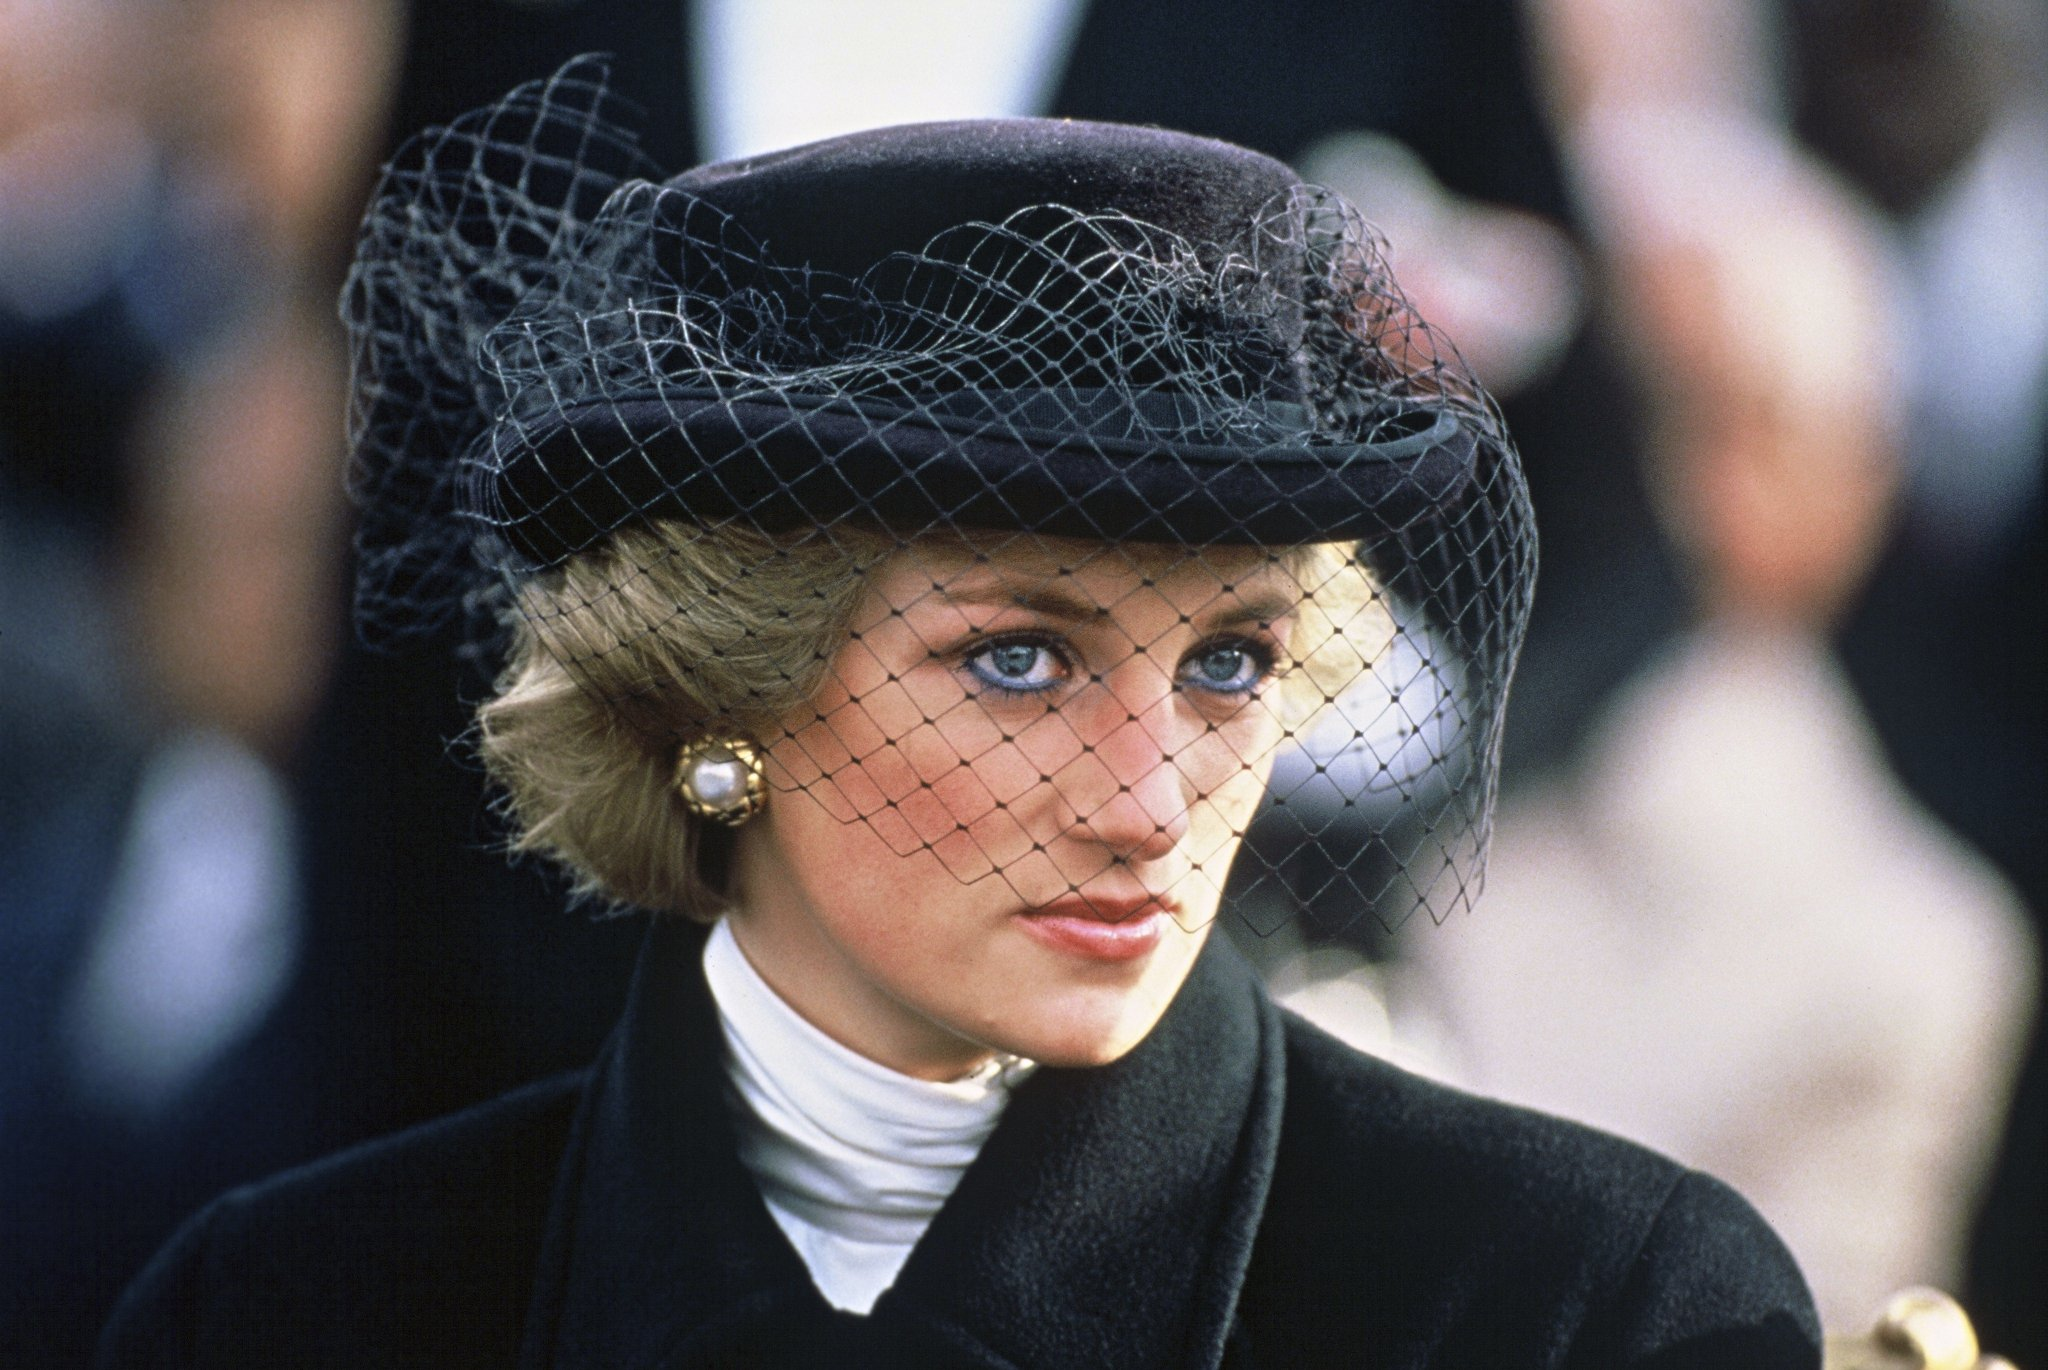 DStv celebrates the life of Princess Diana